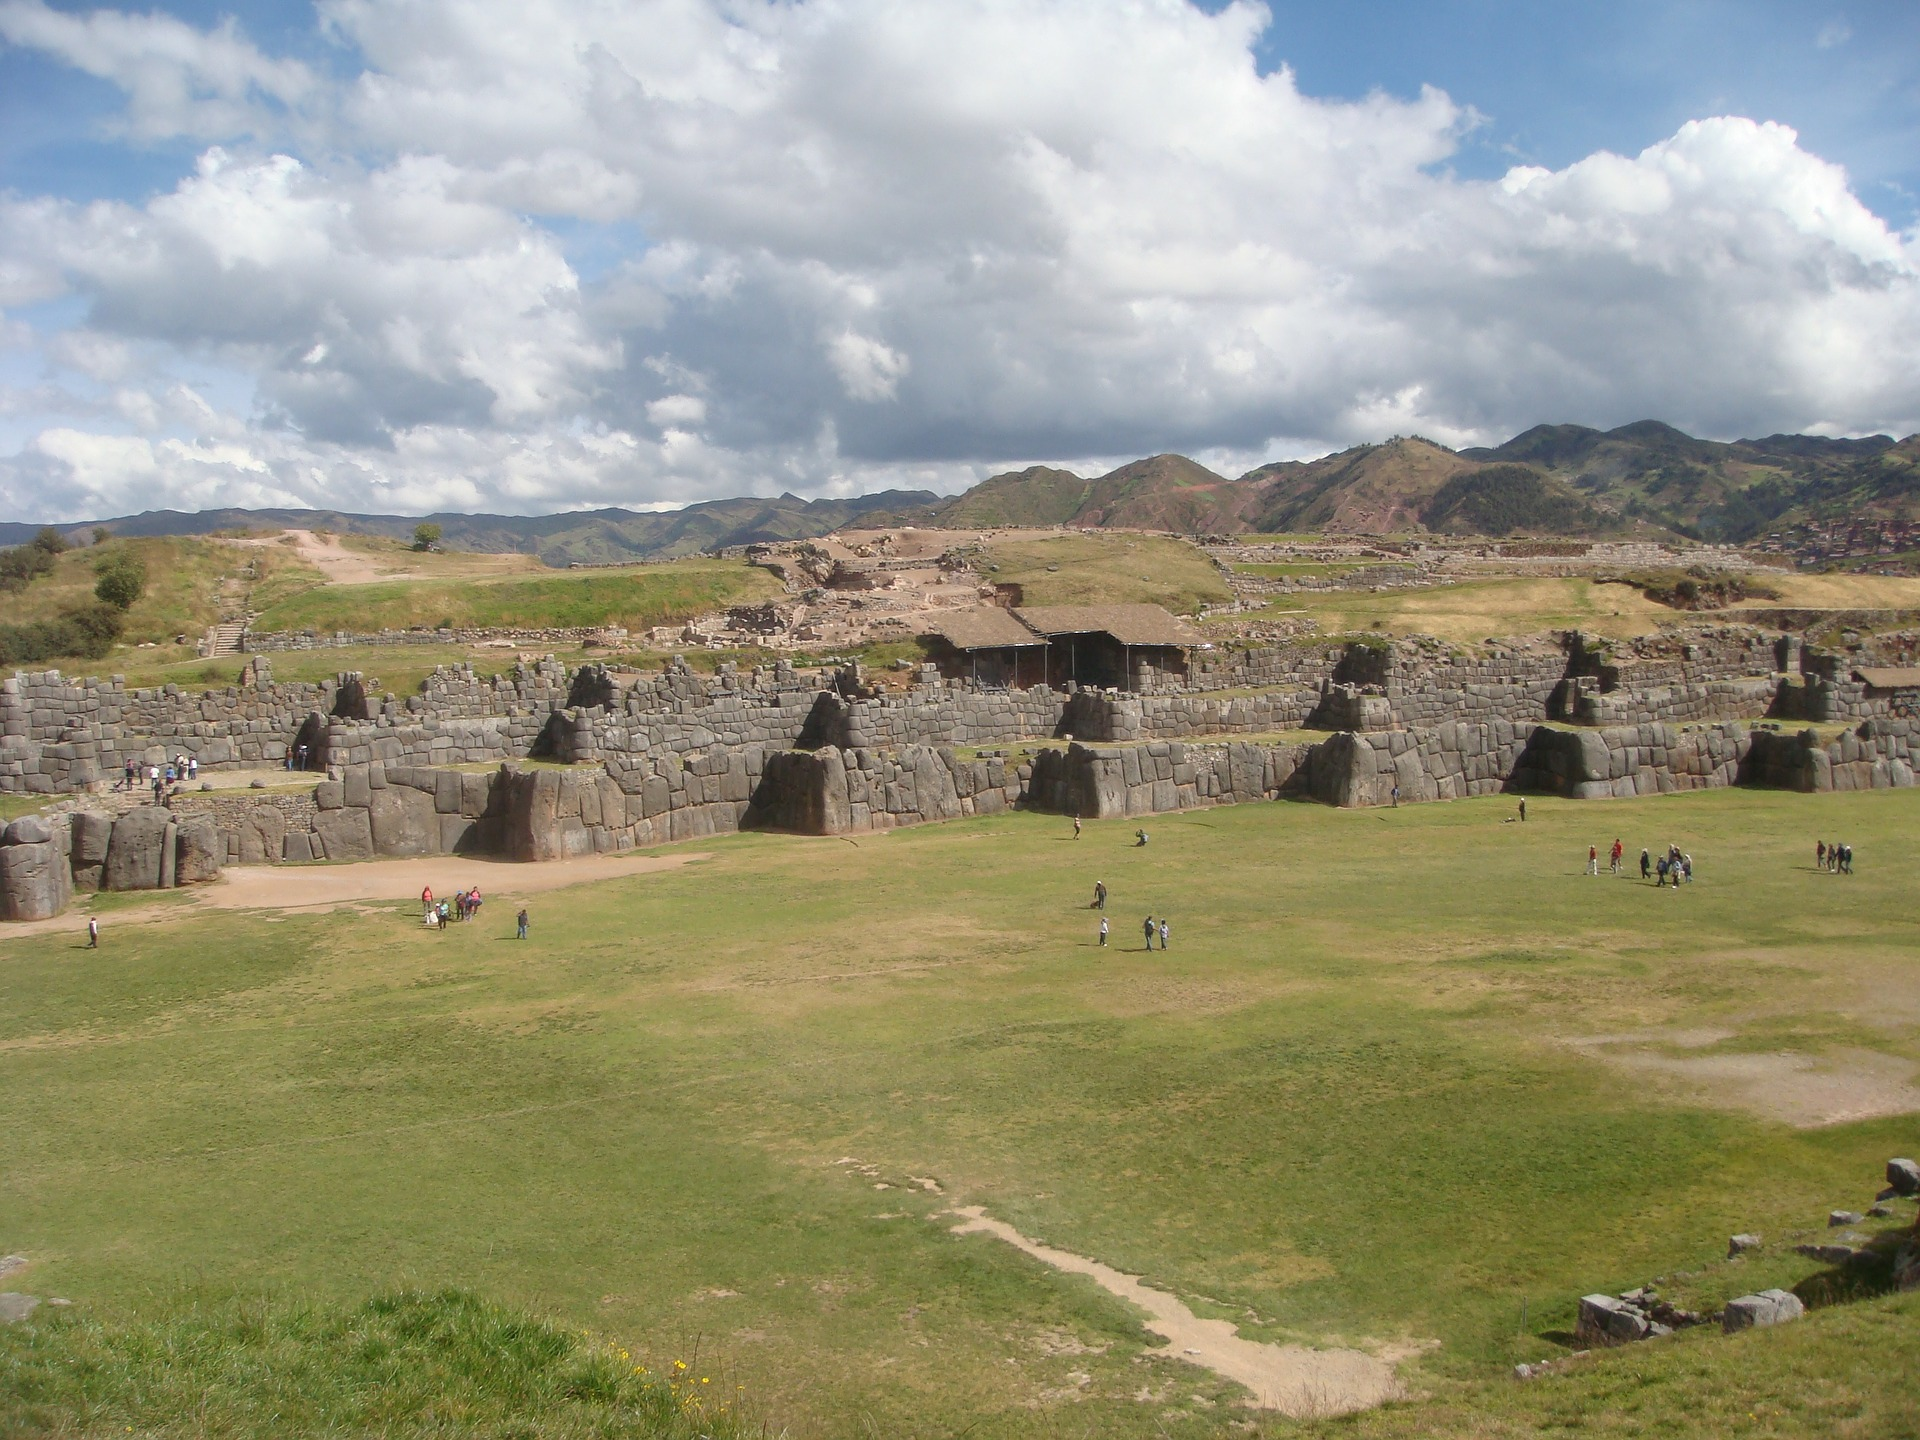 South America Revealed | Inca Ruins, sacsayhuaman, Cusco, Peru